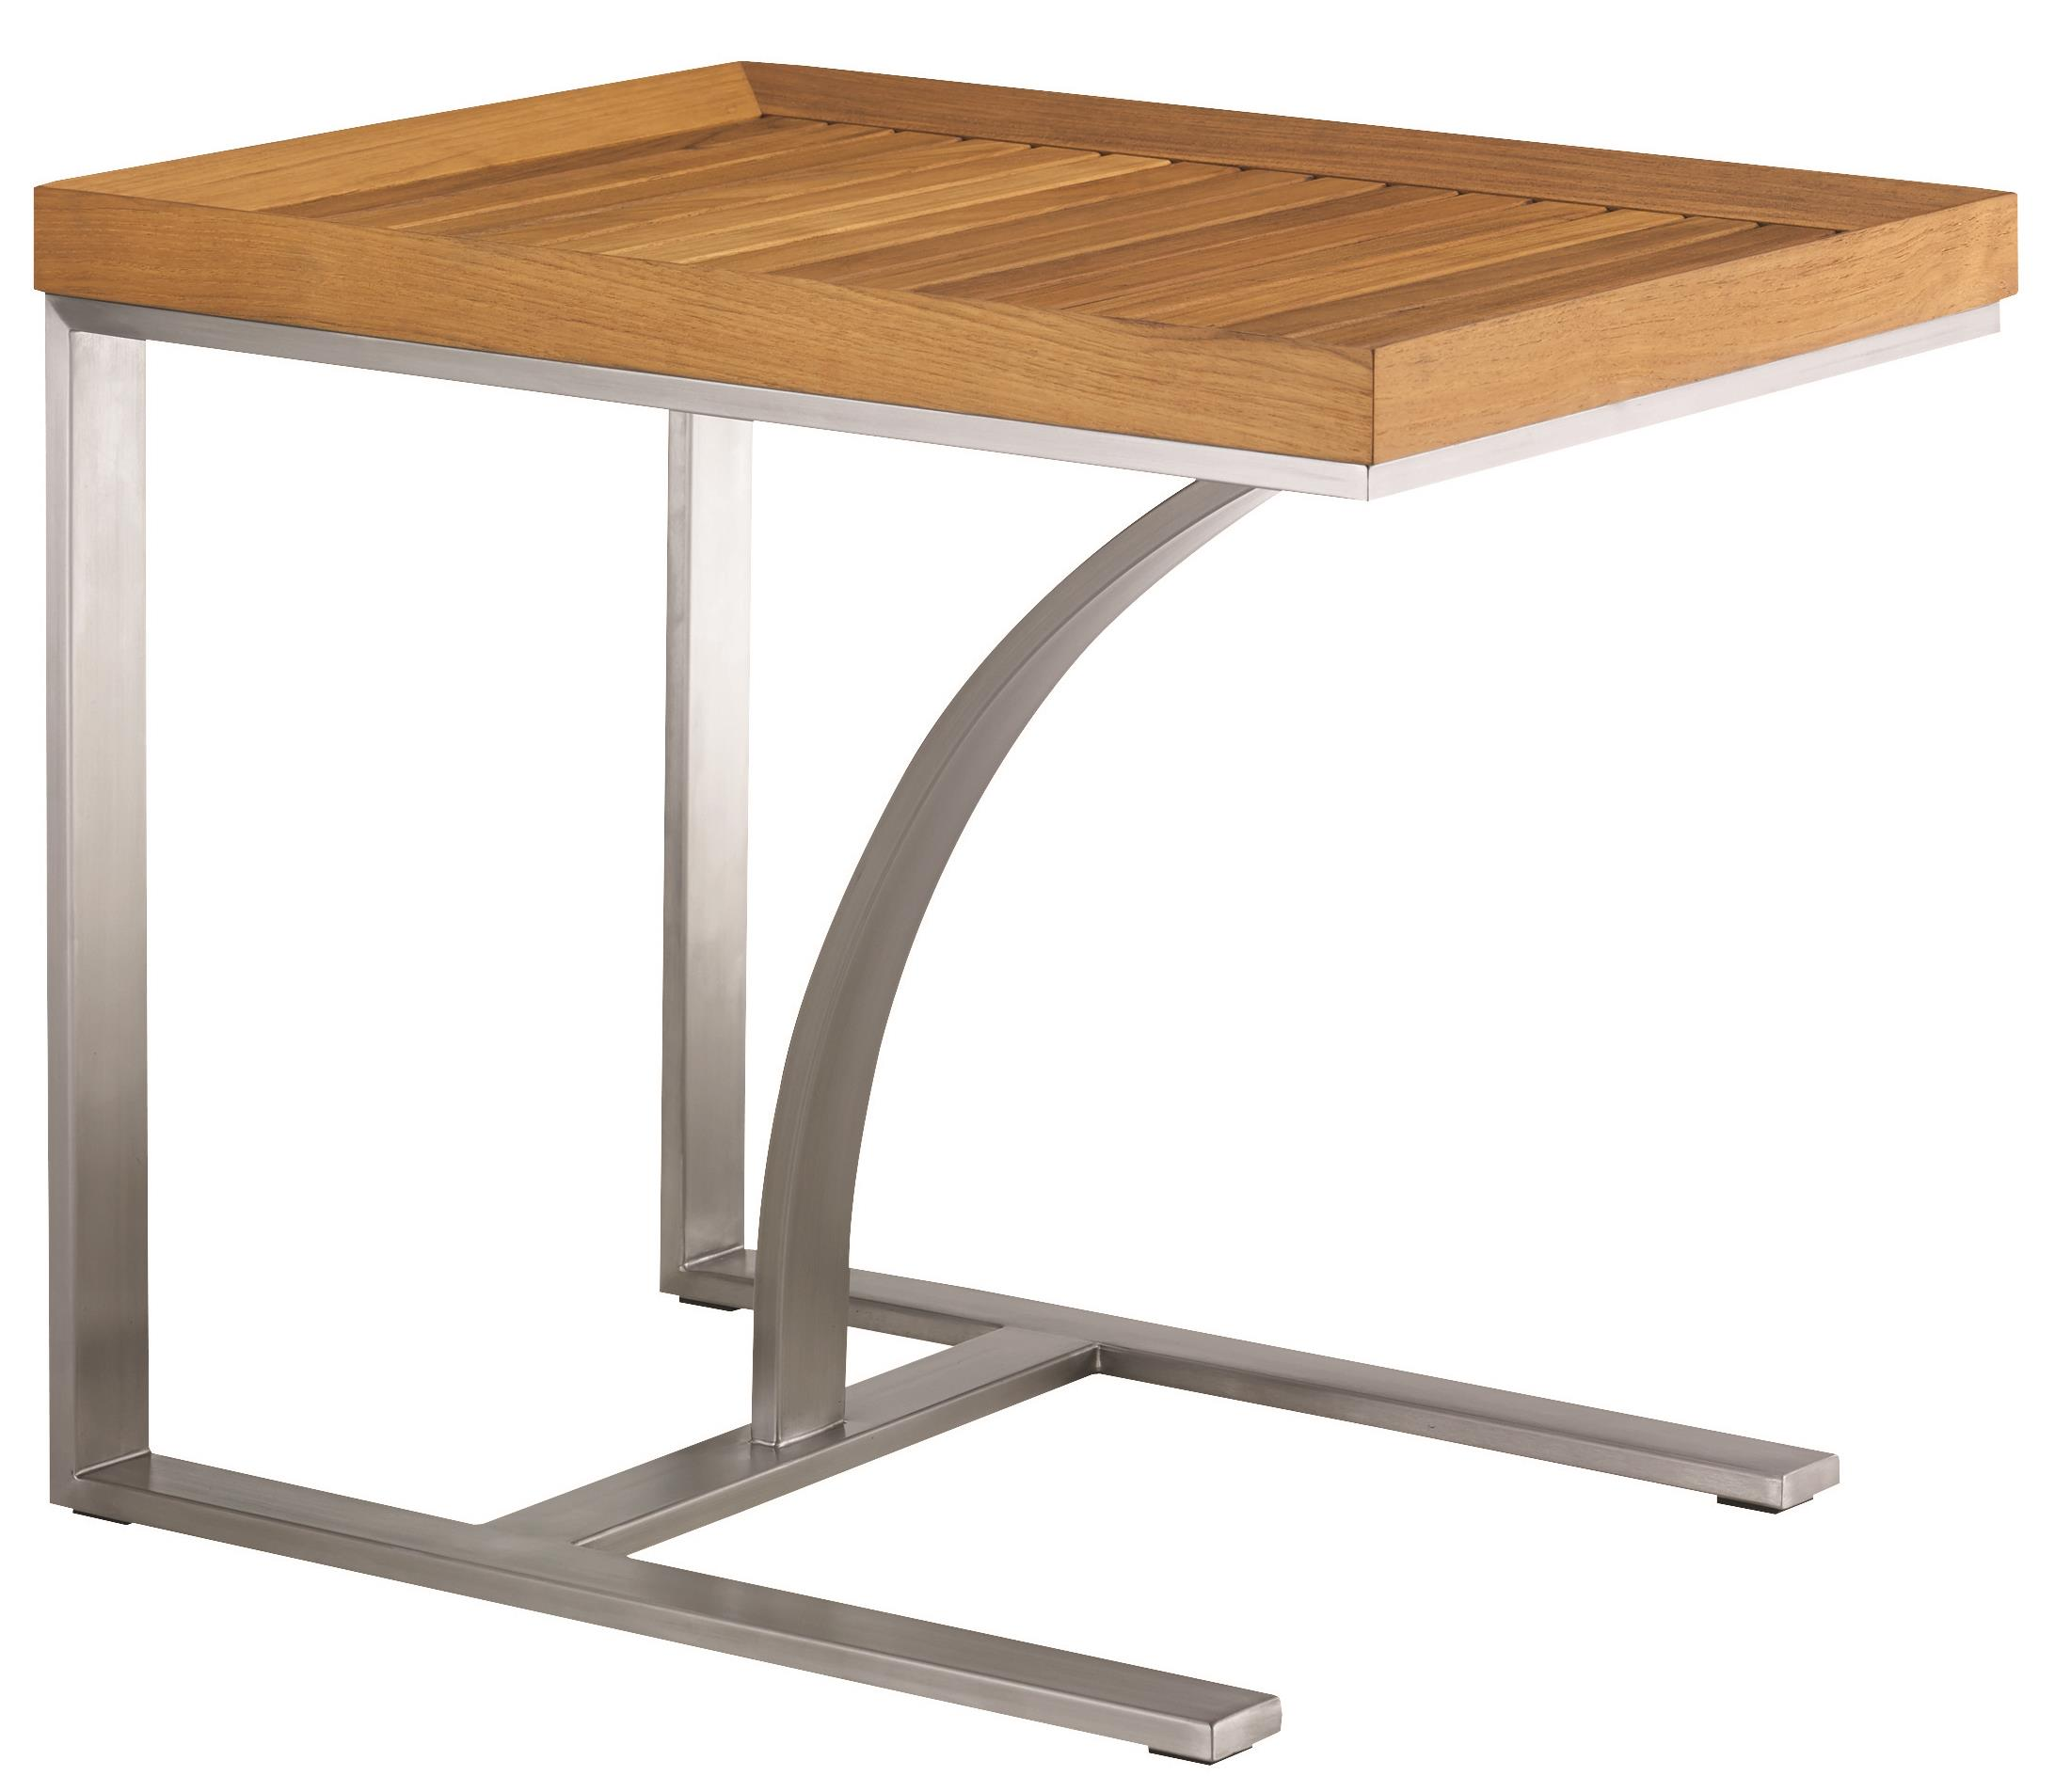 Tommy Bahama Outdoor Living Tres Chic Occasional Table - Item Number: 3401-955